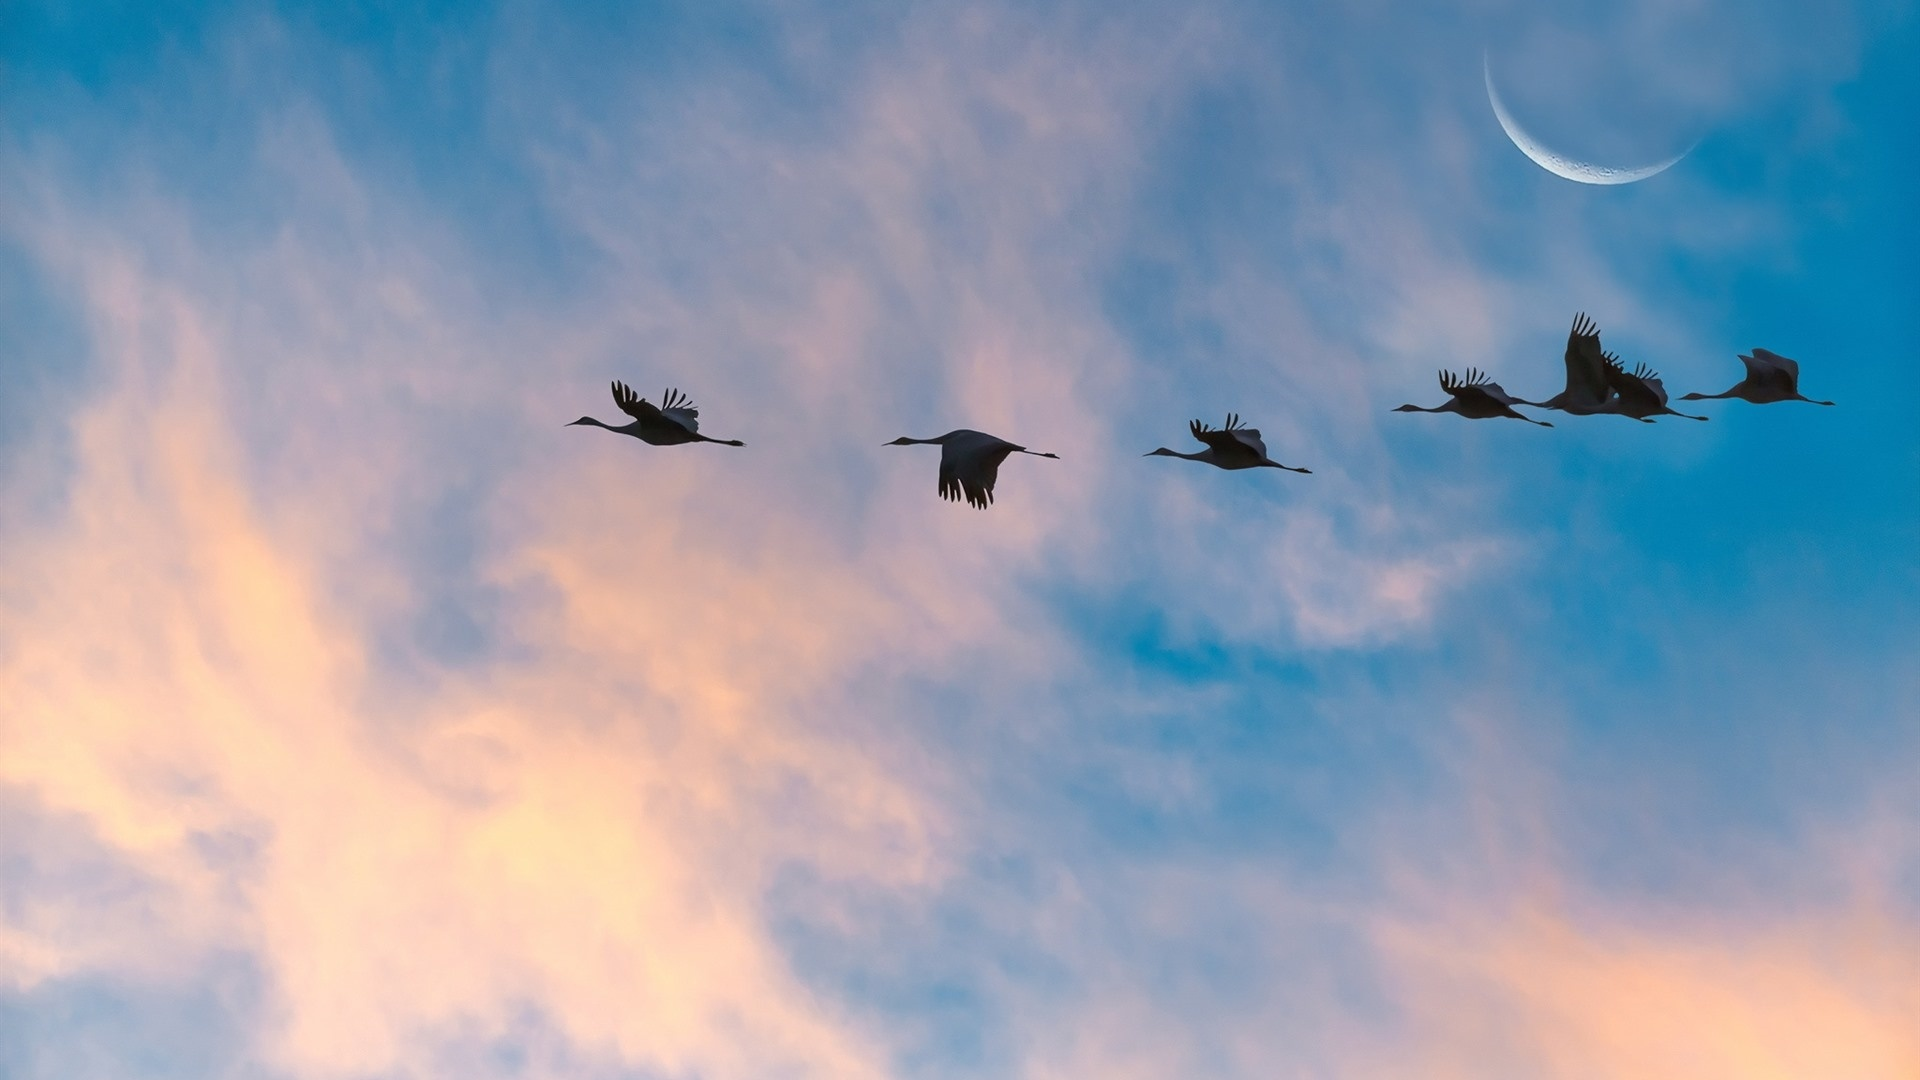 Wedge Birds In The Sky wallpaper for pc